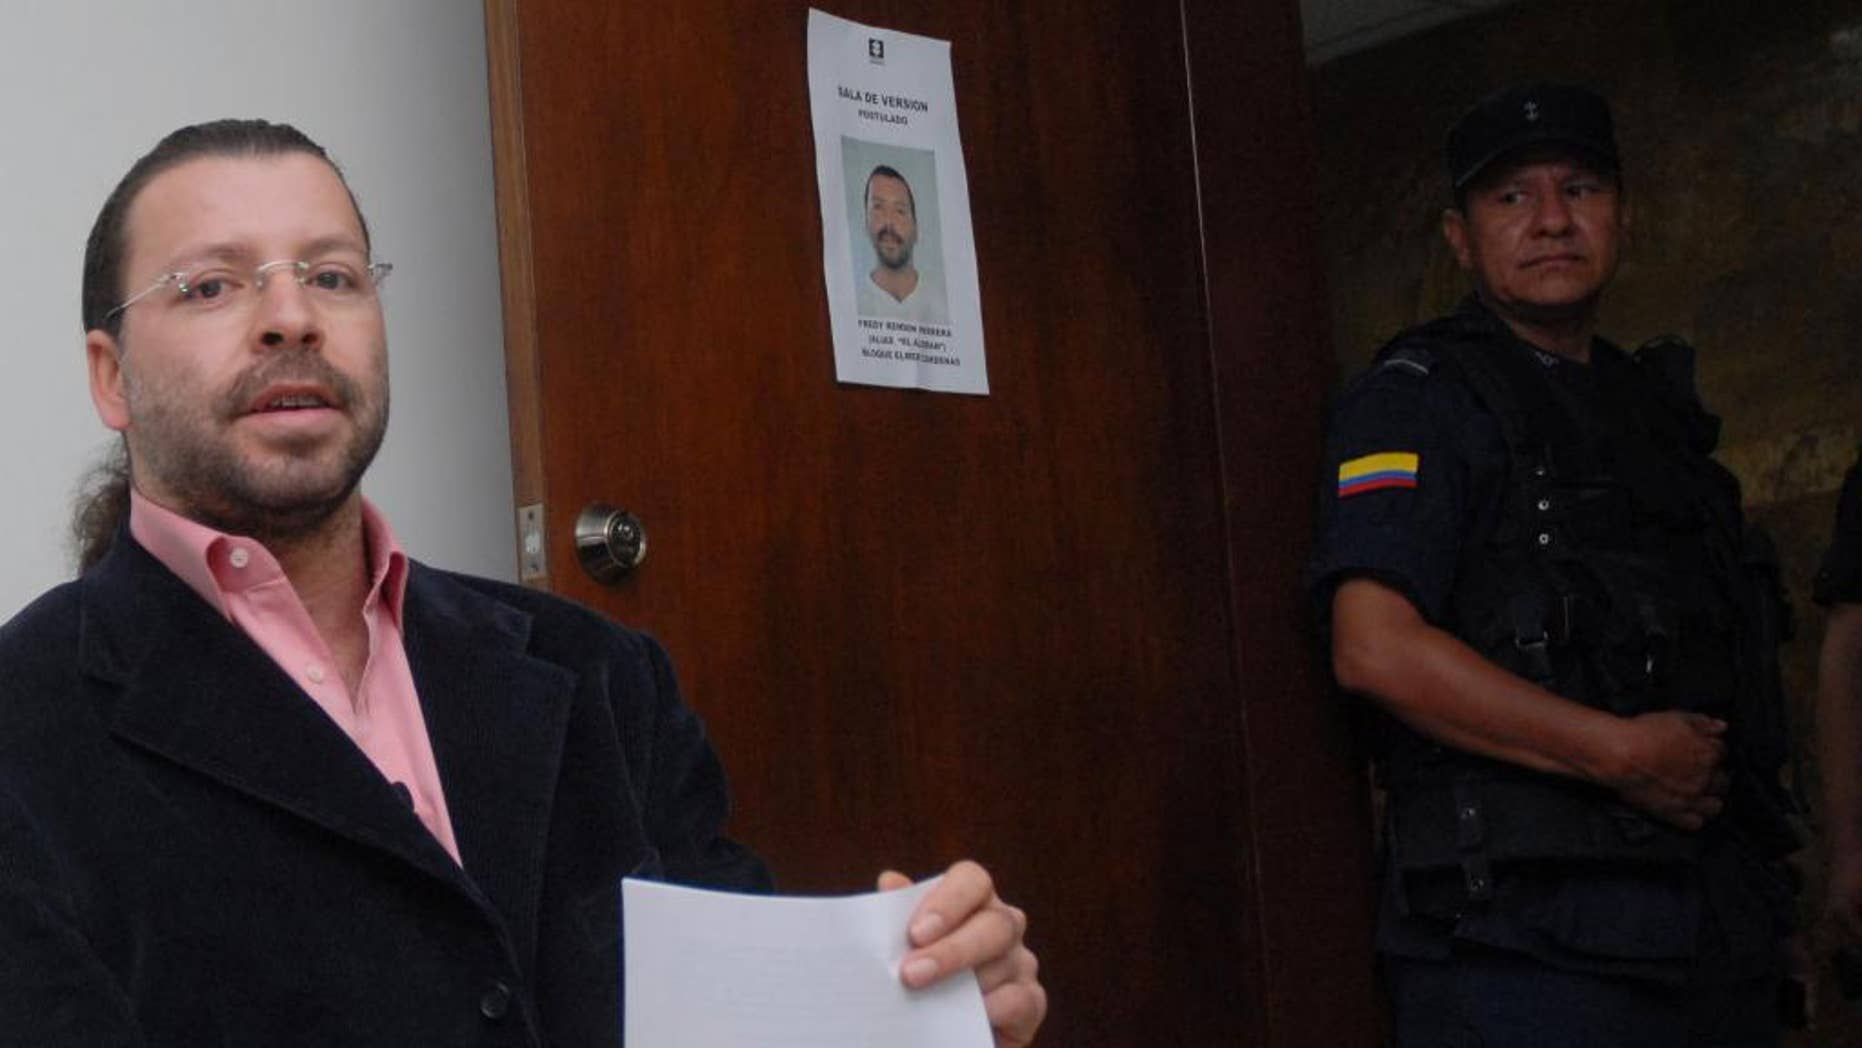 """FILE - In this June 5, 2007 file photo, former paramilitary leader Freddy Rendon sits inside a court before a hearing in Medellin, Colombia. Rendon, better known by his alias """"the German"""", was released from jail Thursday, July 30, 2015.  He is the most senior paramilitary commander to be freed after completing the maximum eight years stipulated in a law for former militia members who confess their war crimes to prosecutors and compensate victims. (AP Photo/ Luis Benavides, File)"""